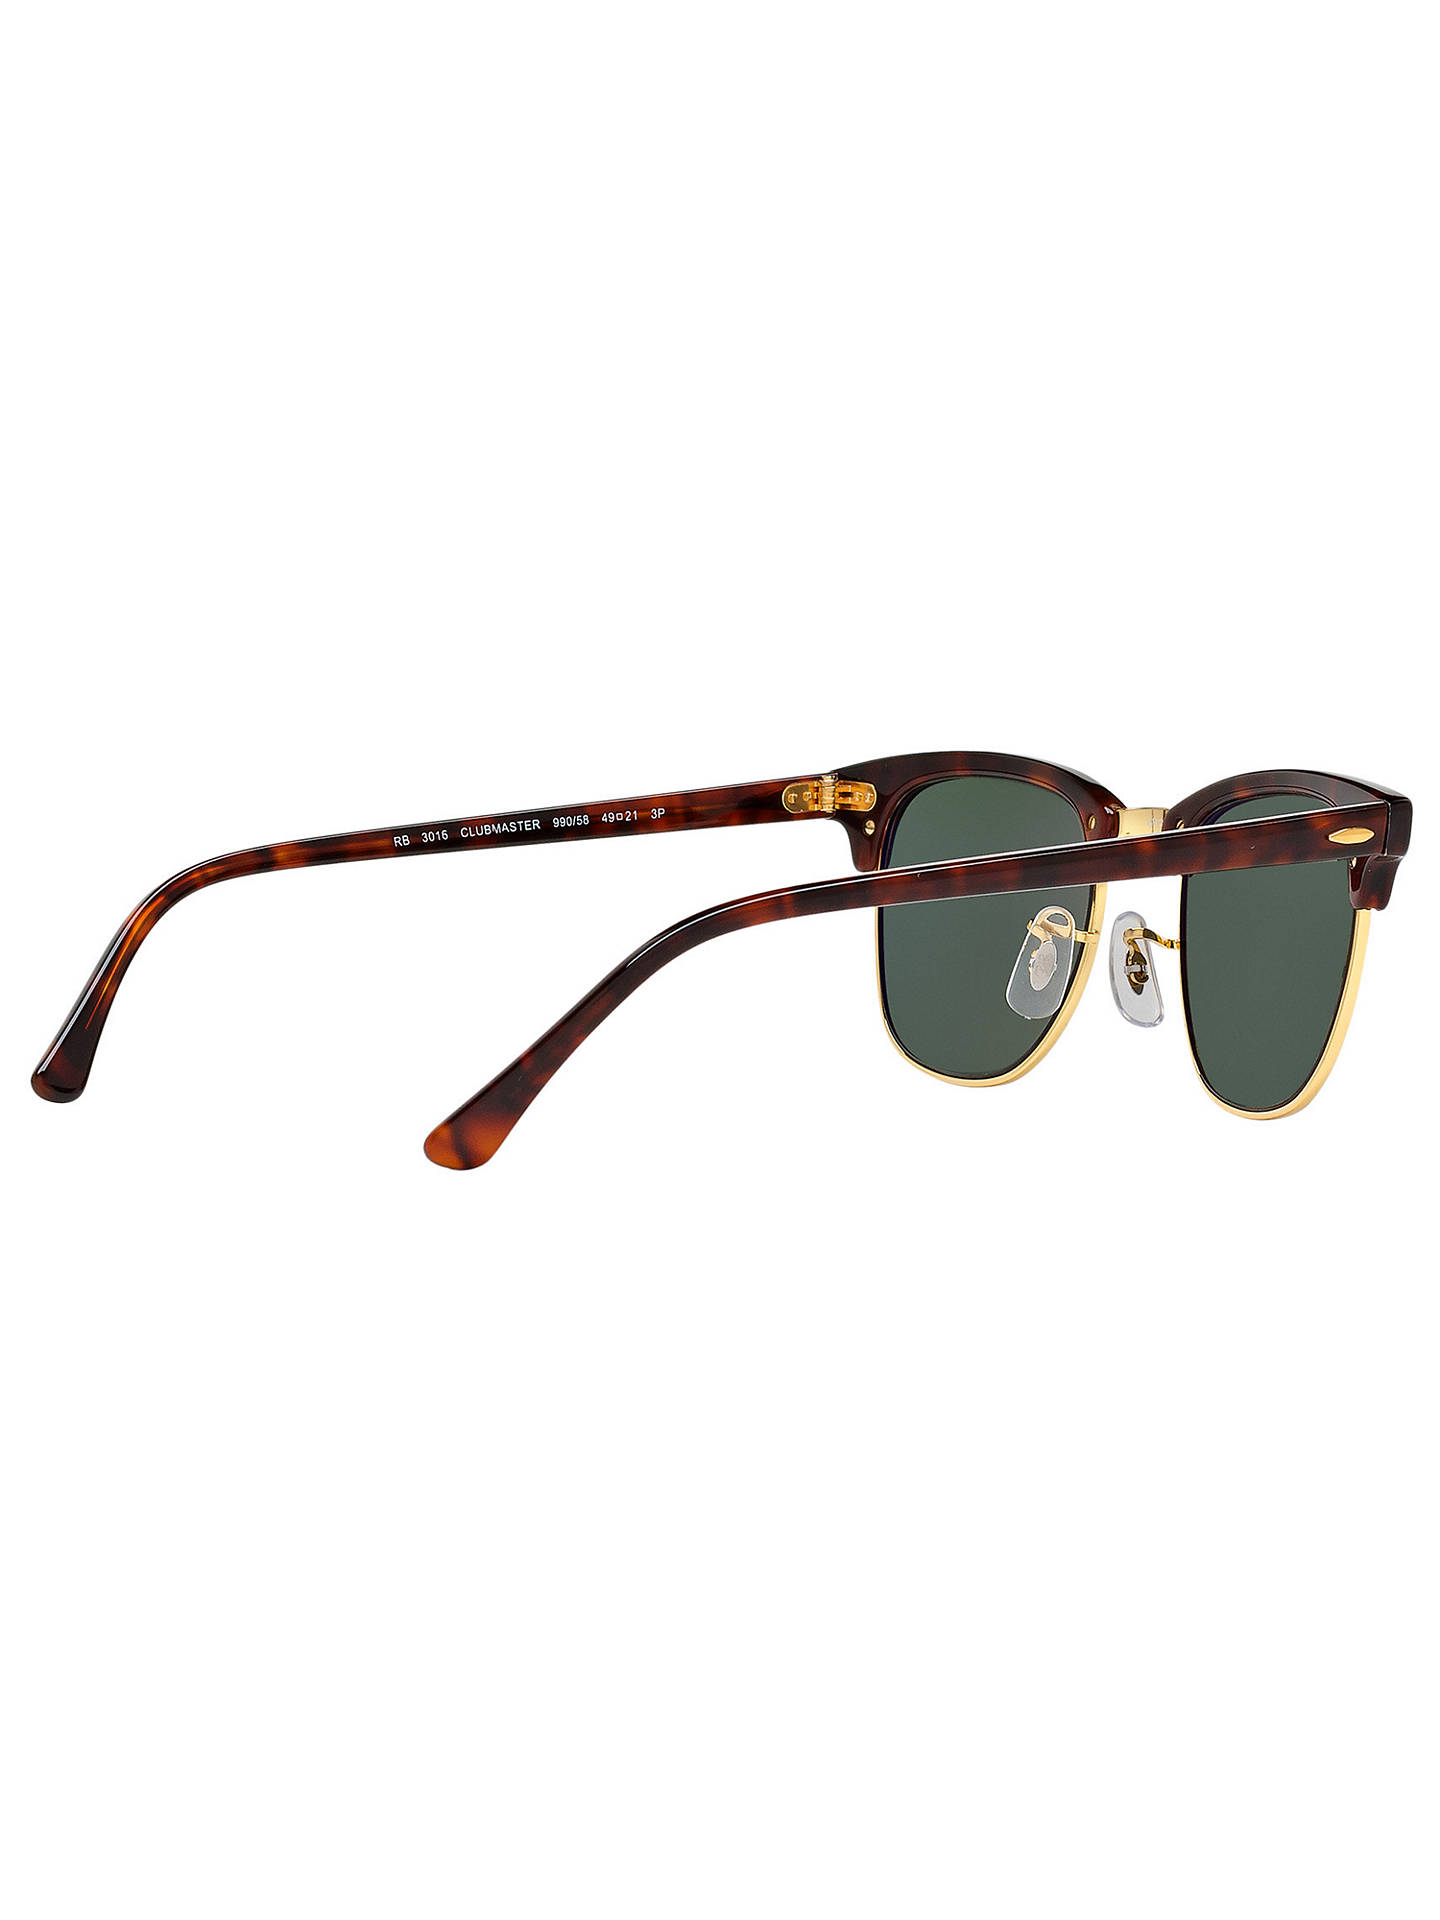 82e392245a ... Buy Ray-Ban RB3016 Men s Polarised Clubmaster Sunglasses